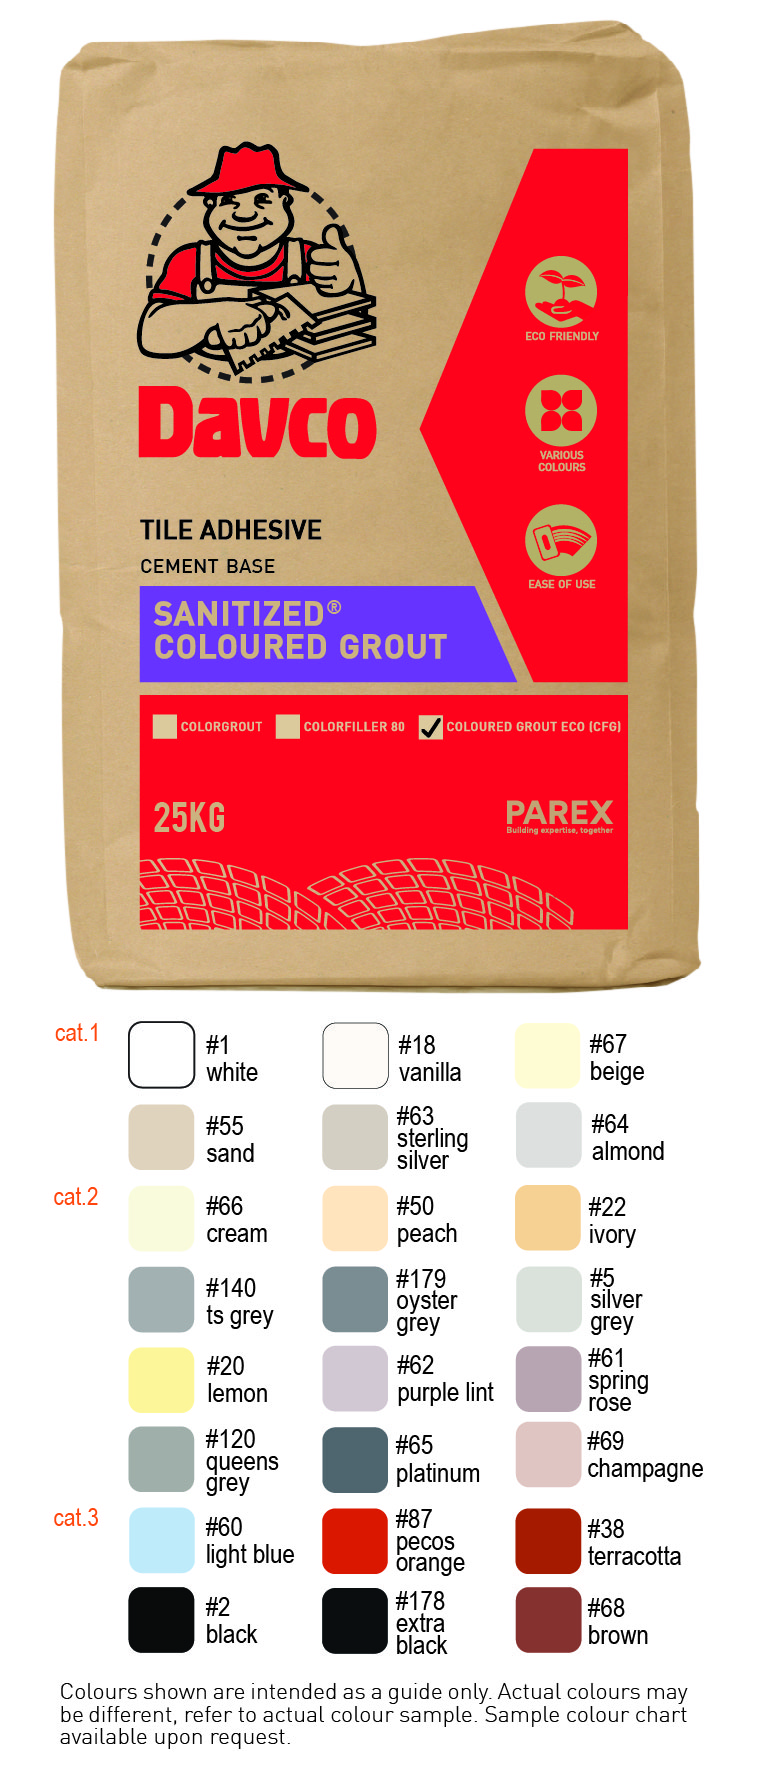 Davco Sanitized Coloured Grout ECO (CFG)